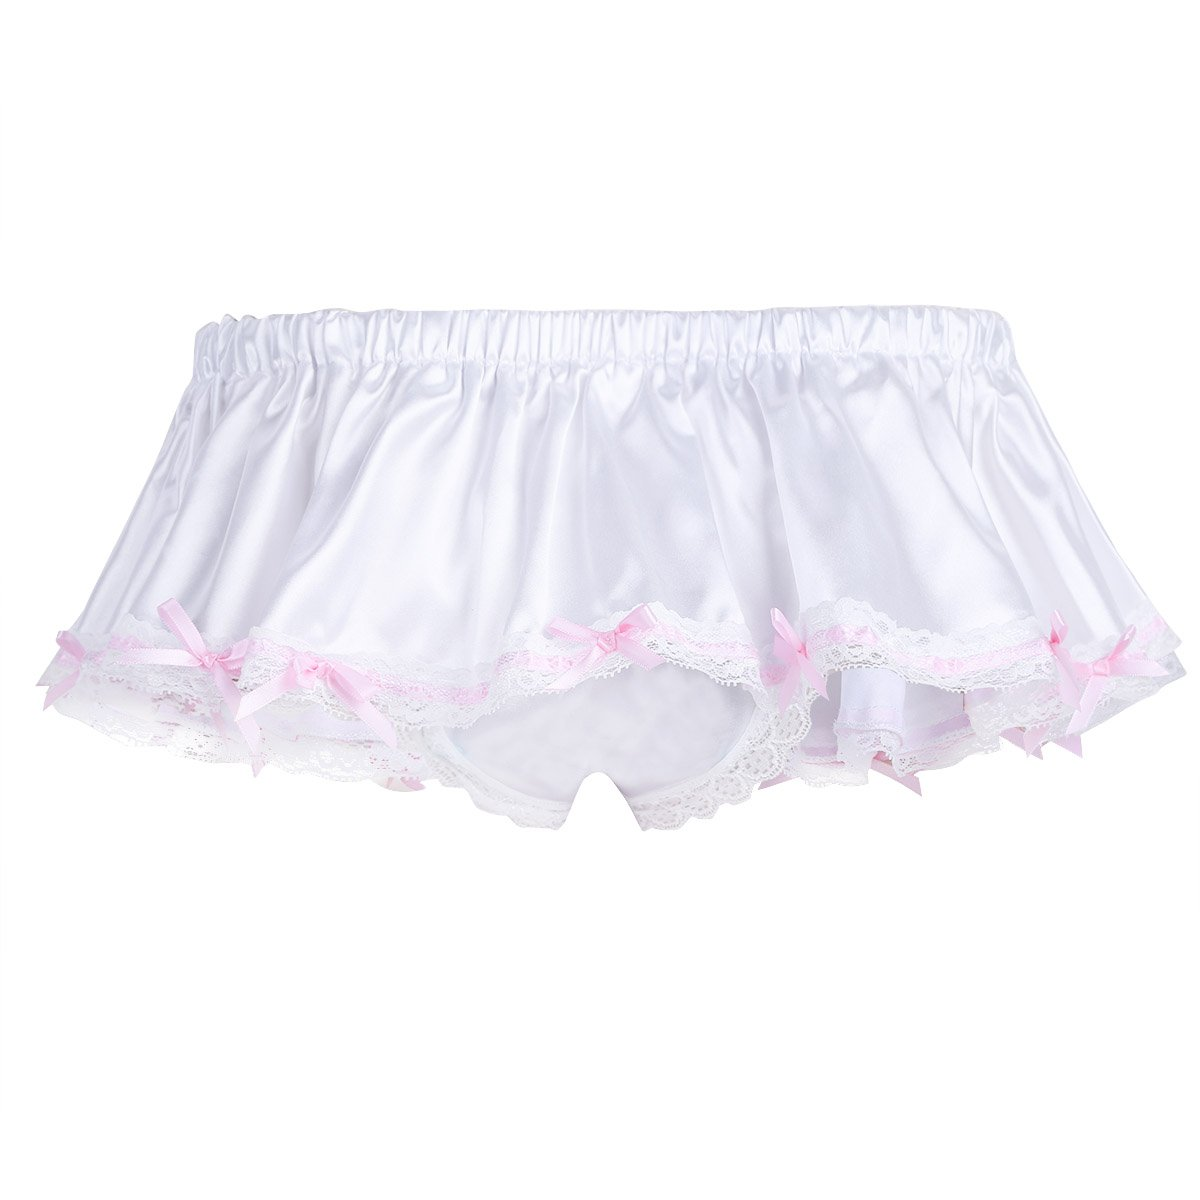 ad5b261eefee MSemis Men's Sissy Skirted Panties Satin Frilly Lace Briefs Thongs Underwear  Crossdress at Amazon Men's Clothing store: